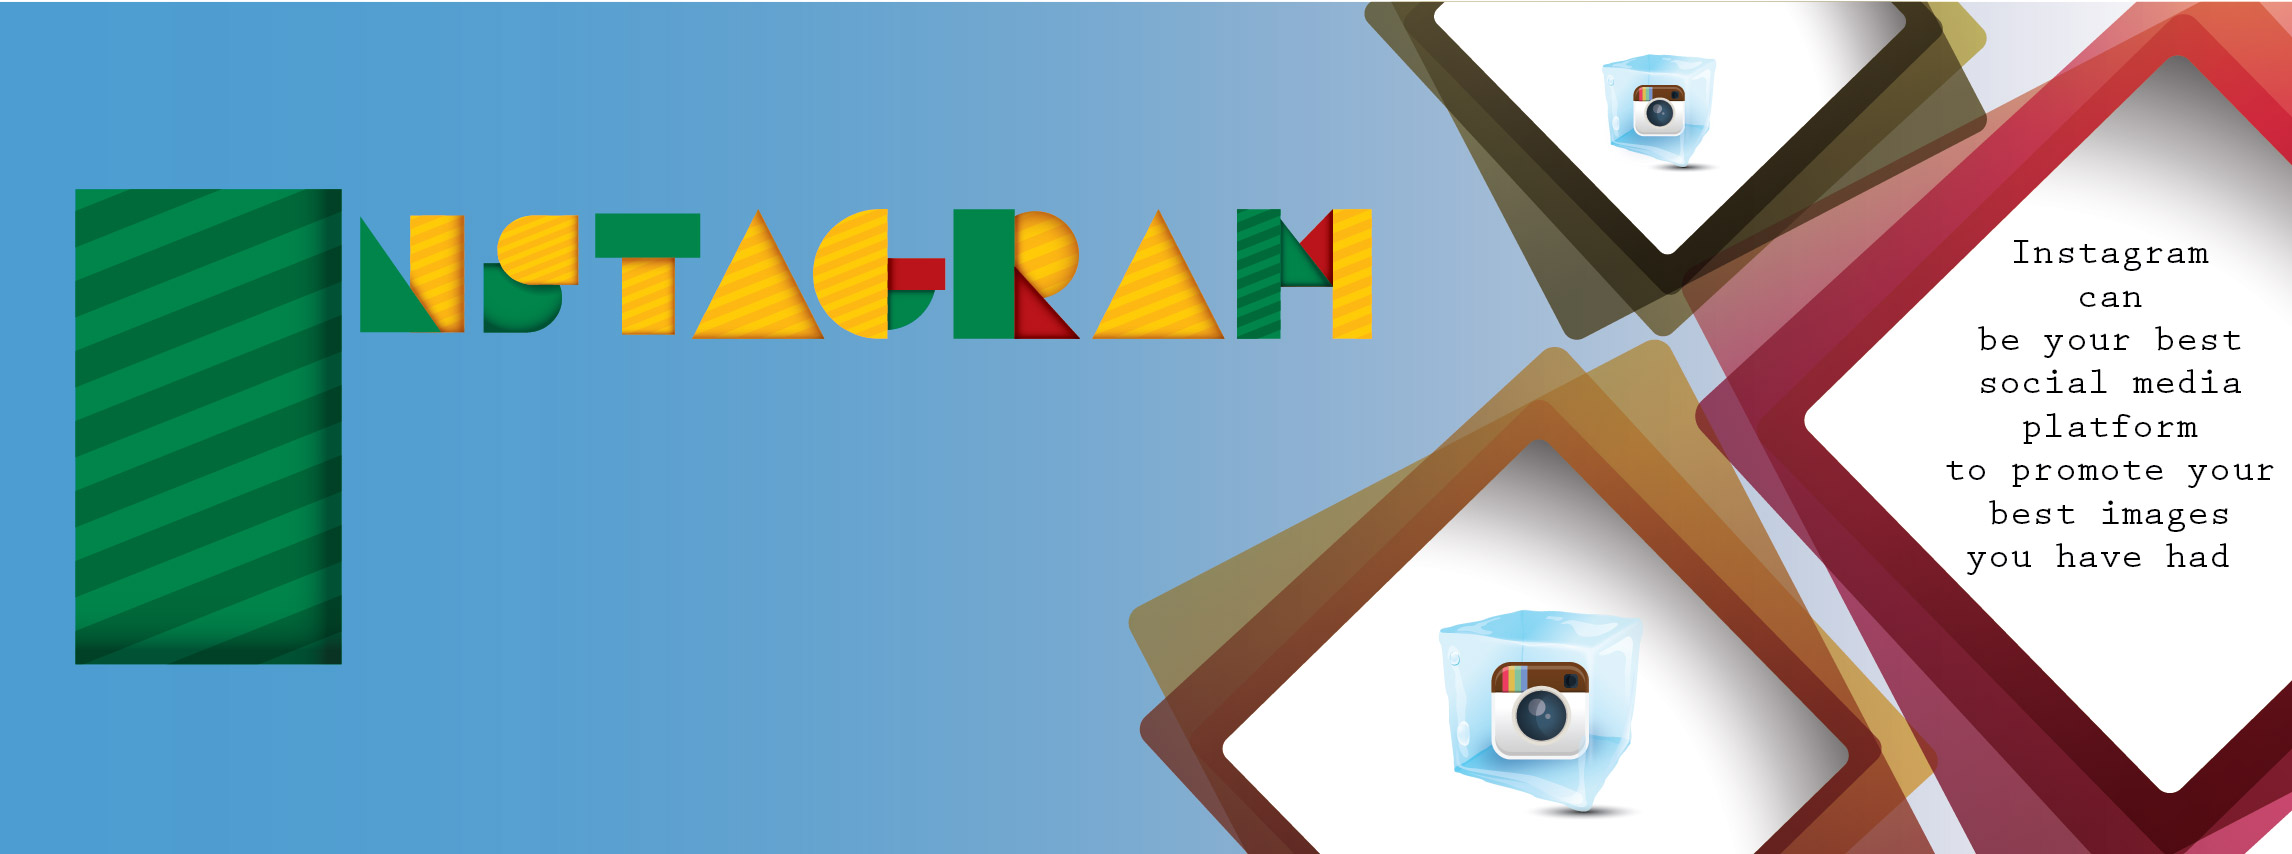 Instagram Marketing For Photography Business